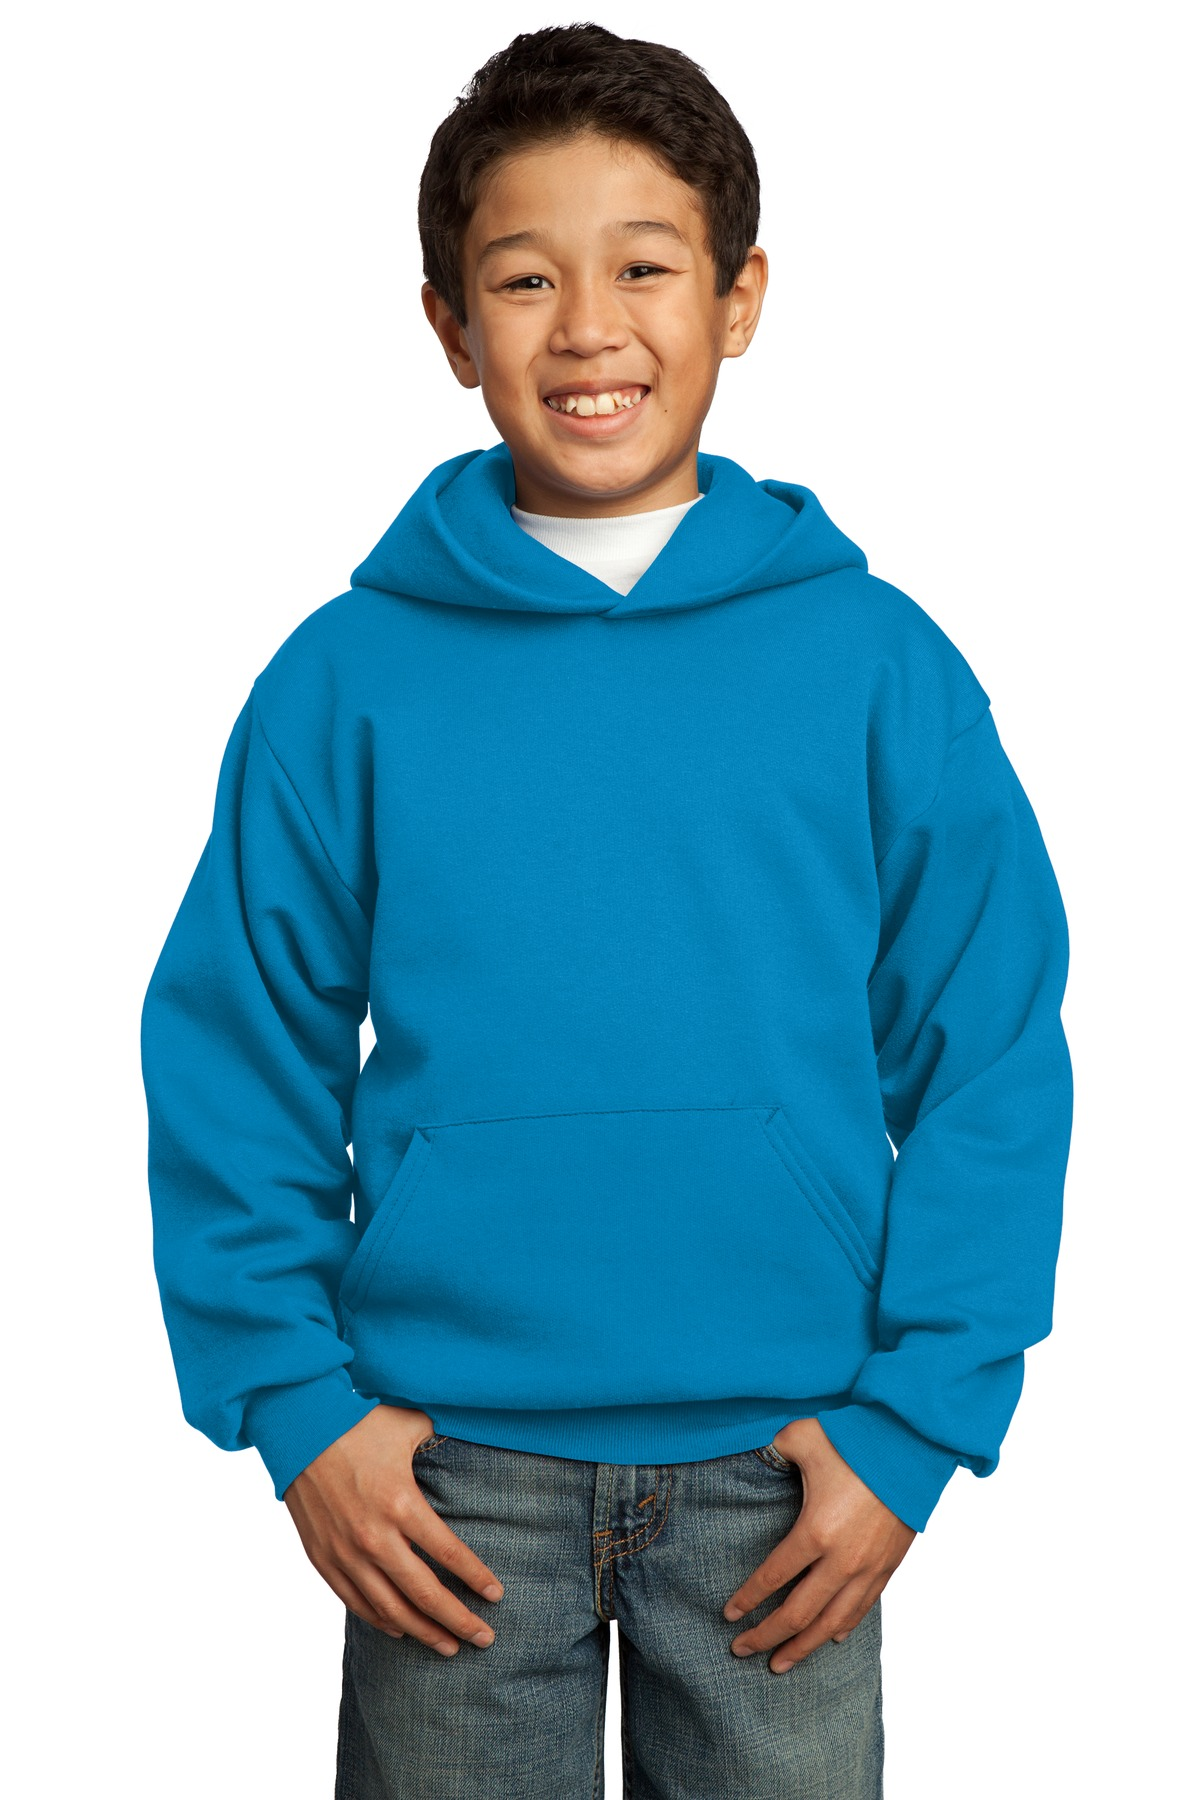 Port & Company ®  - Youth Core Fleece Pullover Hooded Sweatshirt.  PC90YH - Sapphire